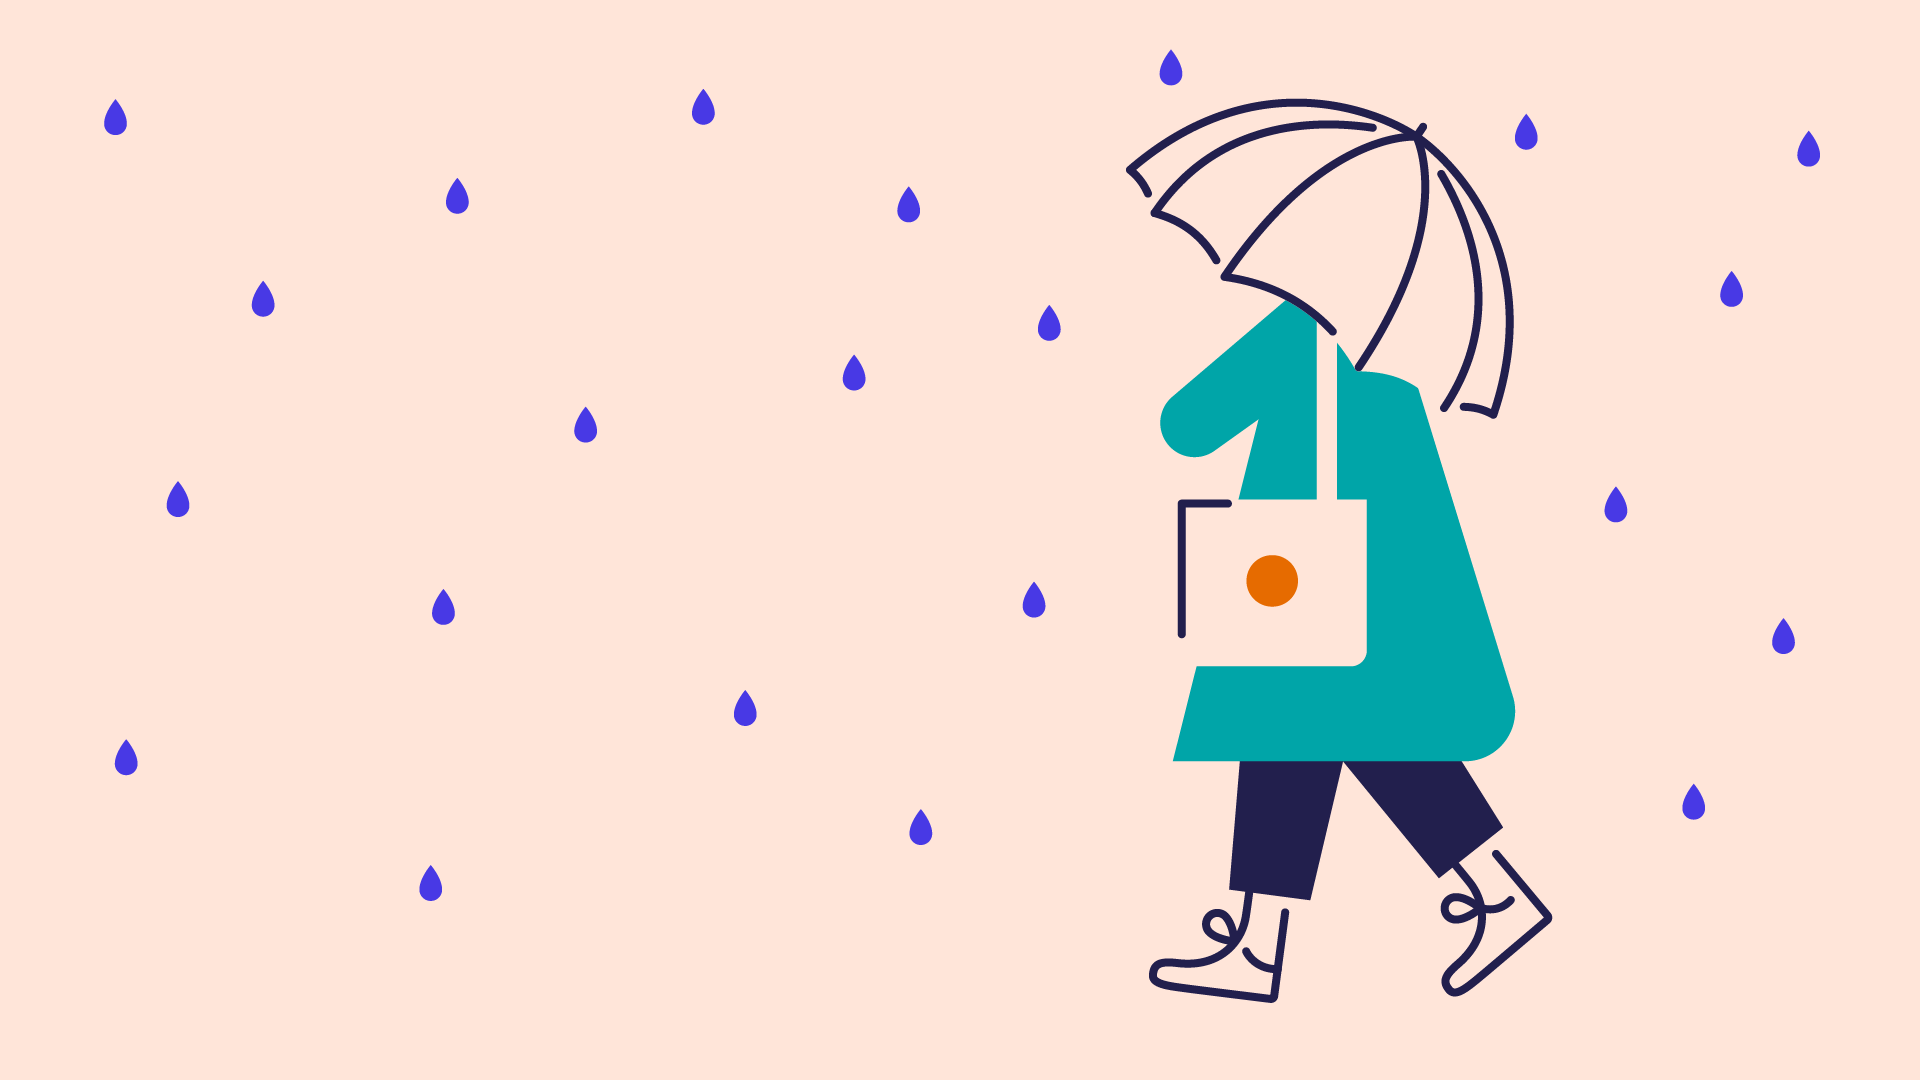 illustration of person with umbrella walking in the rain